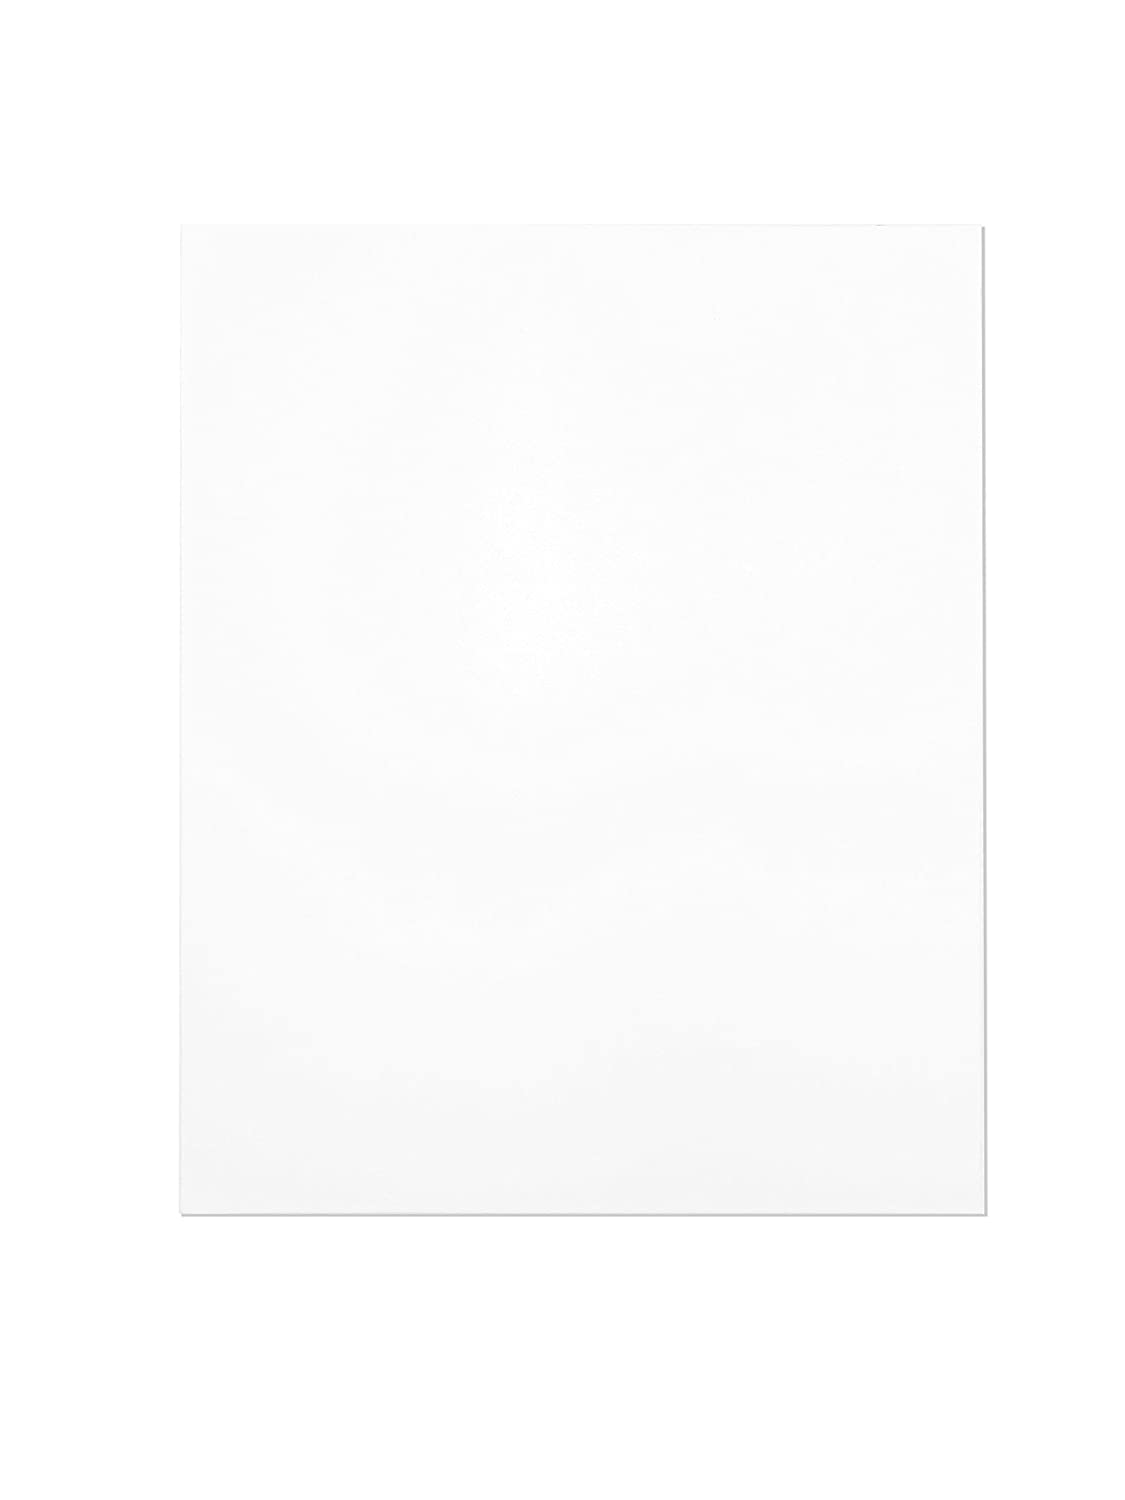 Clear Plastic Bags + Backing Boards 25pcs Complete Set The Display Guys Pack of 25 Red Picture Photo Matting Mat Boards 25pcs White Core Bevel Cut 5x7 Red Mat Boards Complete Set